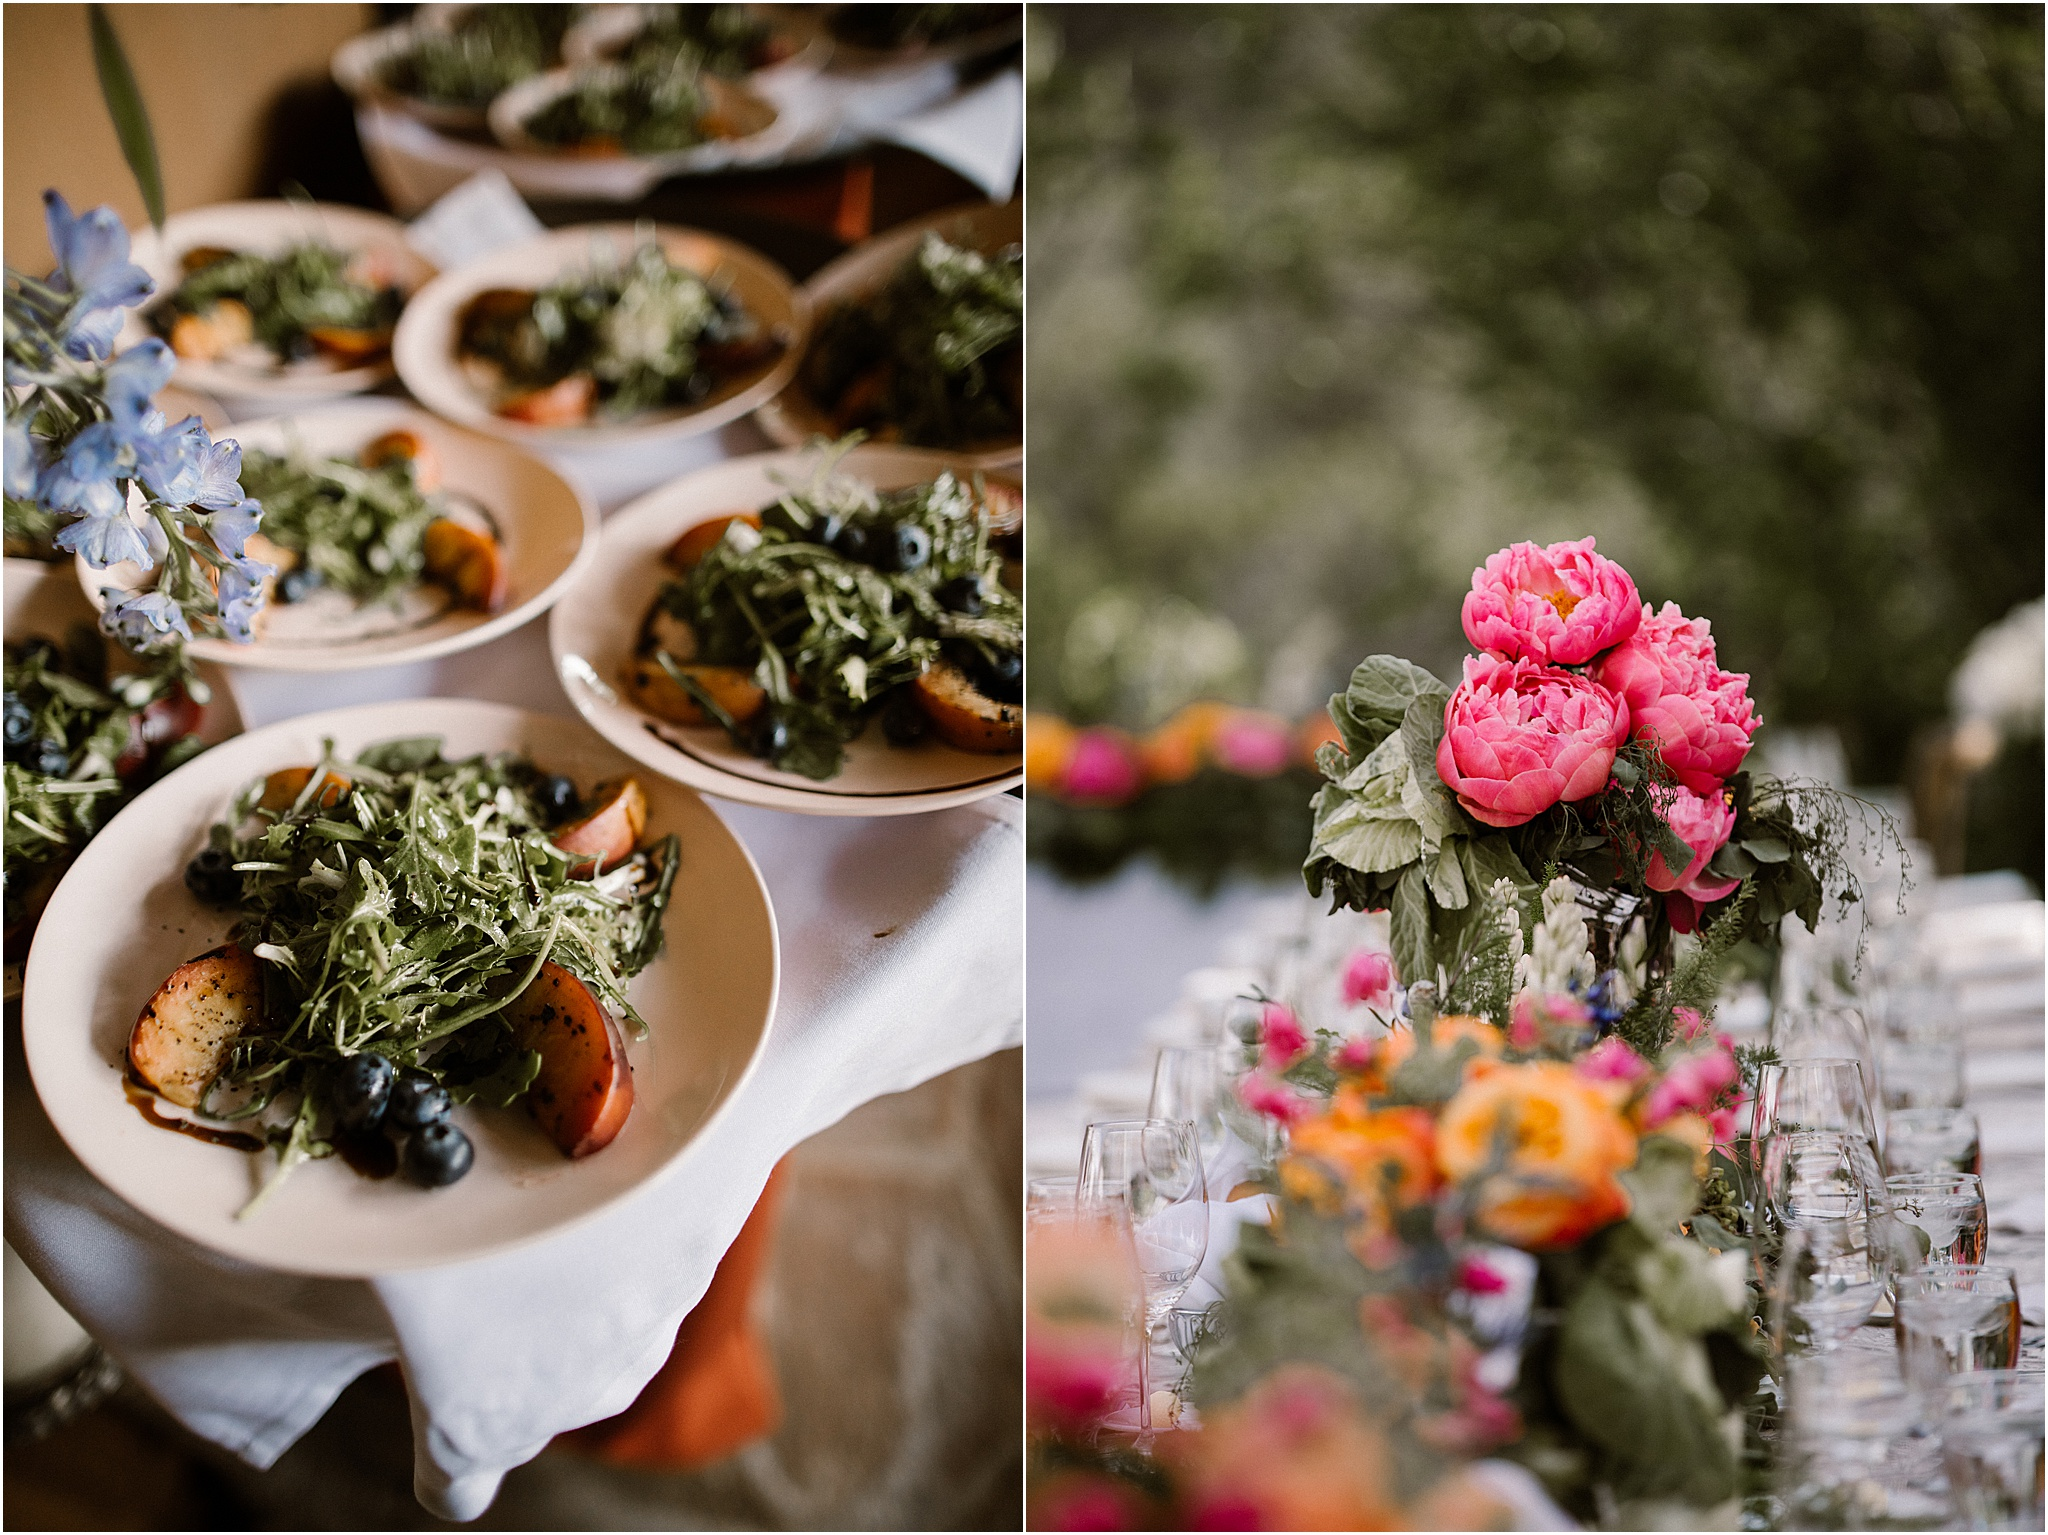 AMELIA_JASON_SANTA FE_ WEDDING_BLUE ROSE PHOTOGRAPHY101